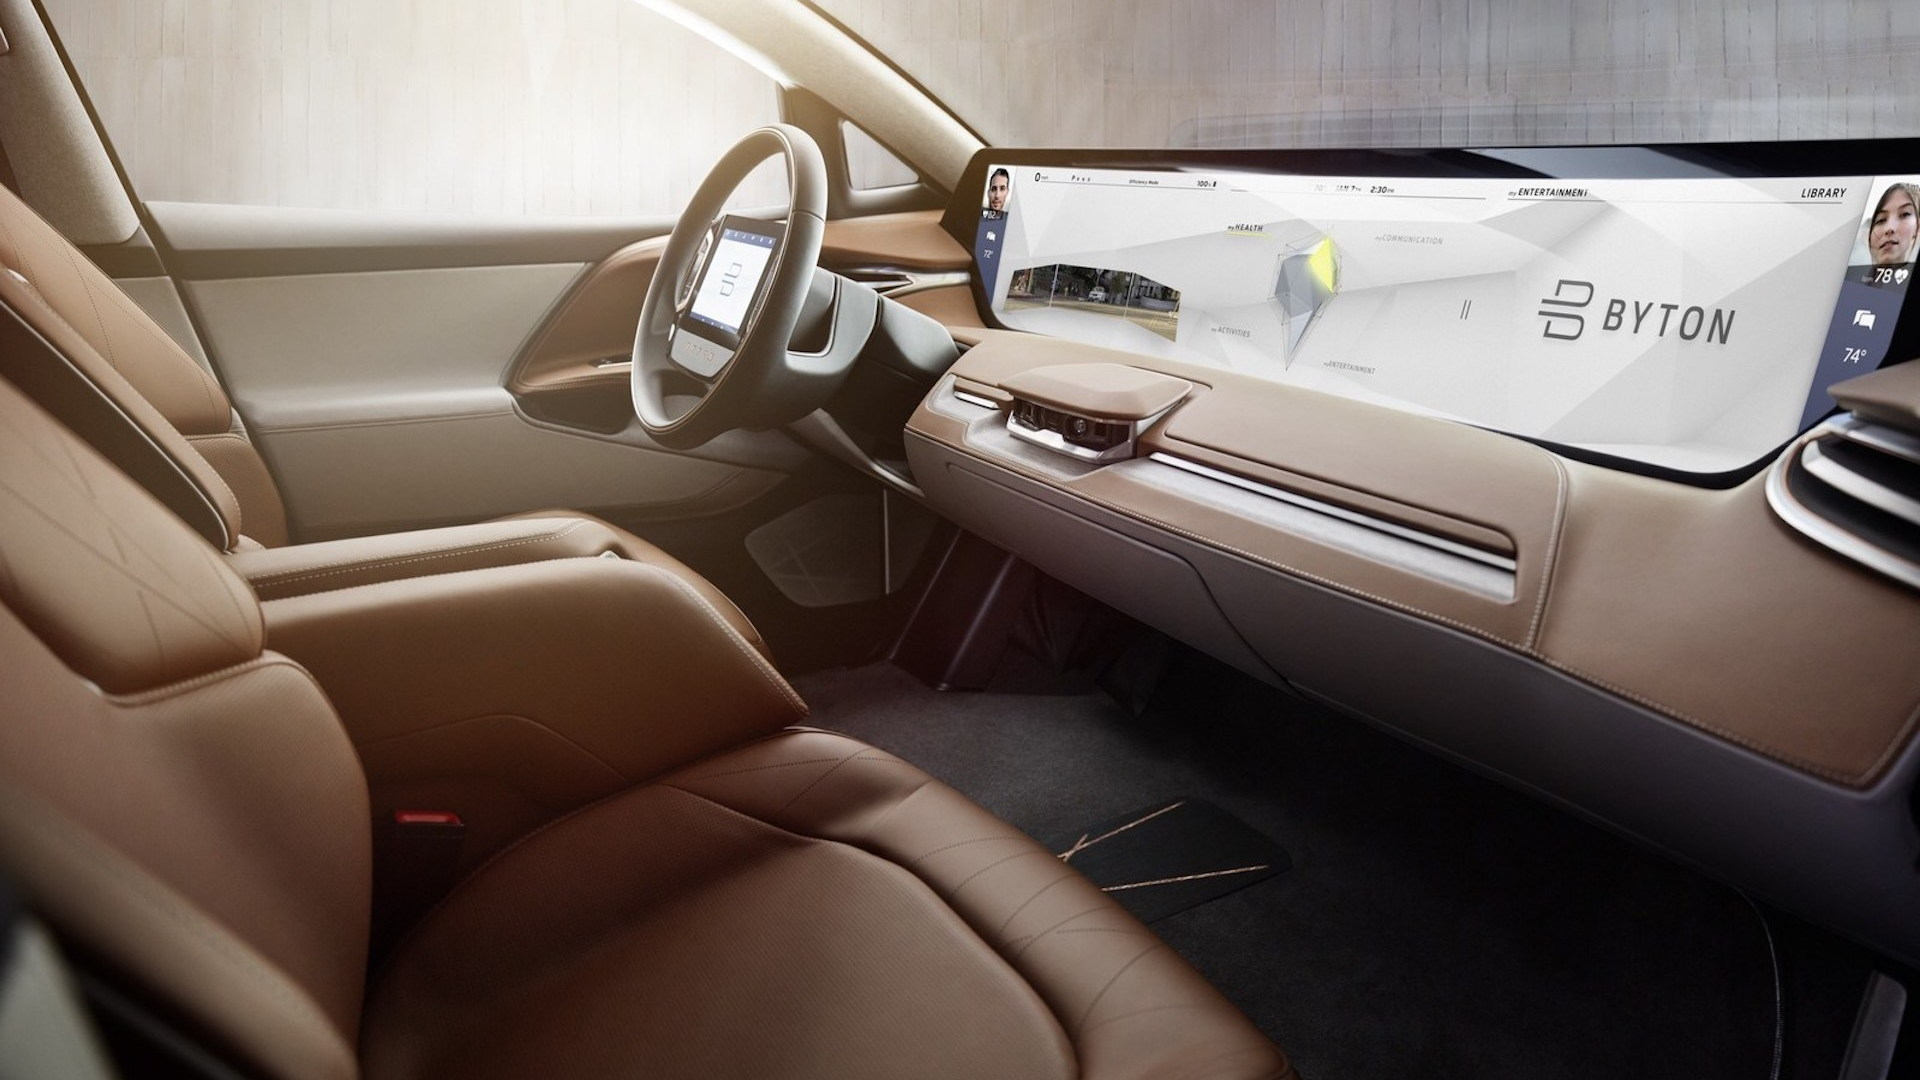 Byton concept, 2018 Consumer Electronics Show